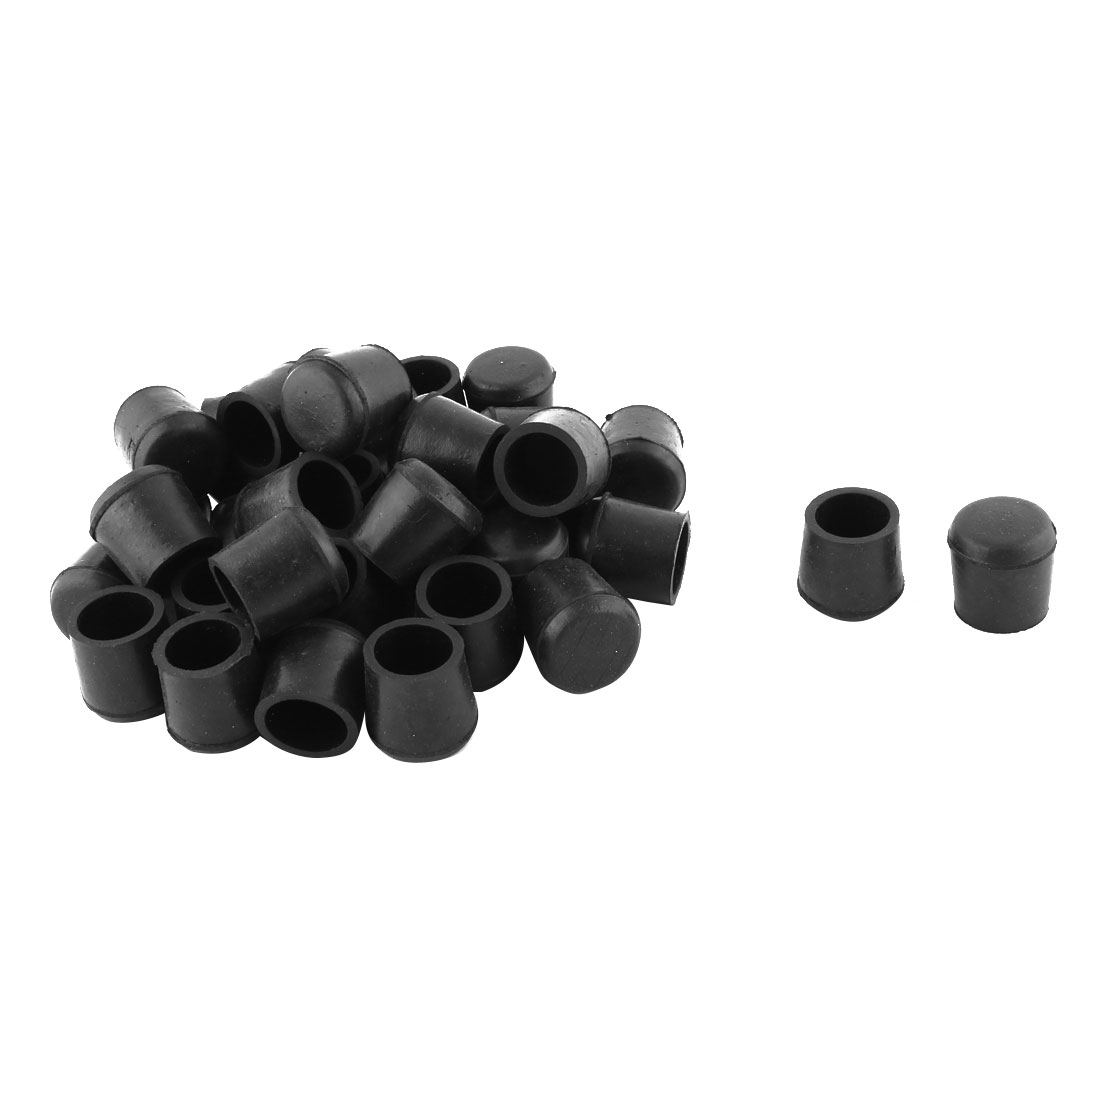 Home Rubber Tube Pipe Insert Furniture Foot Cover Blanking End Cap Black 36pcs